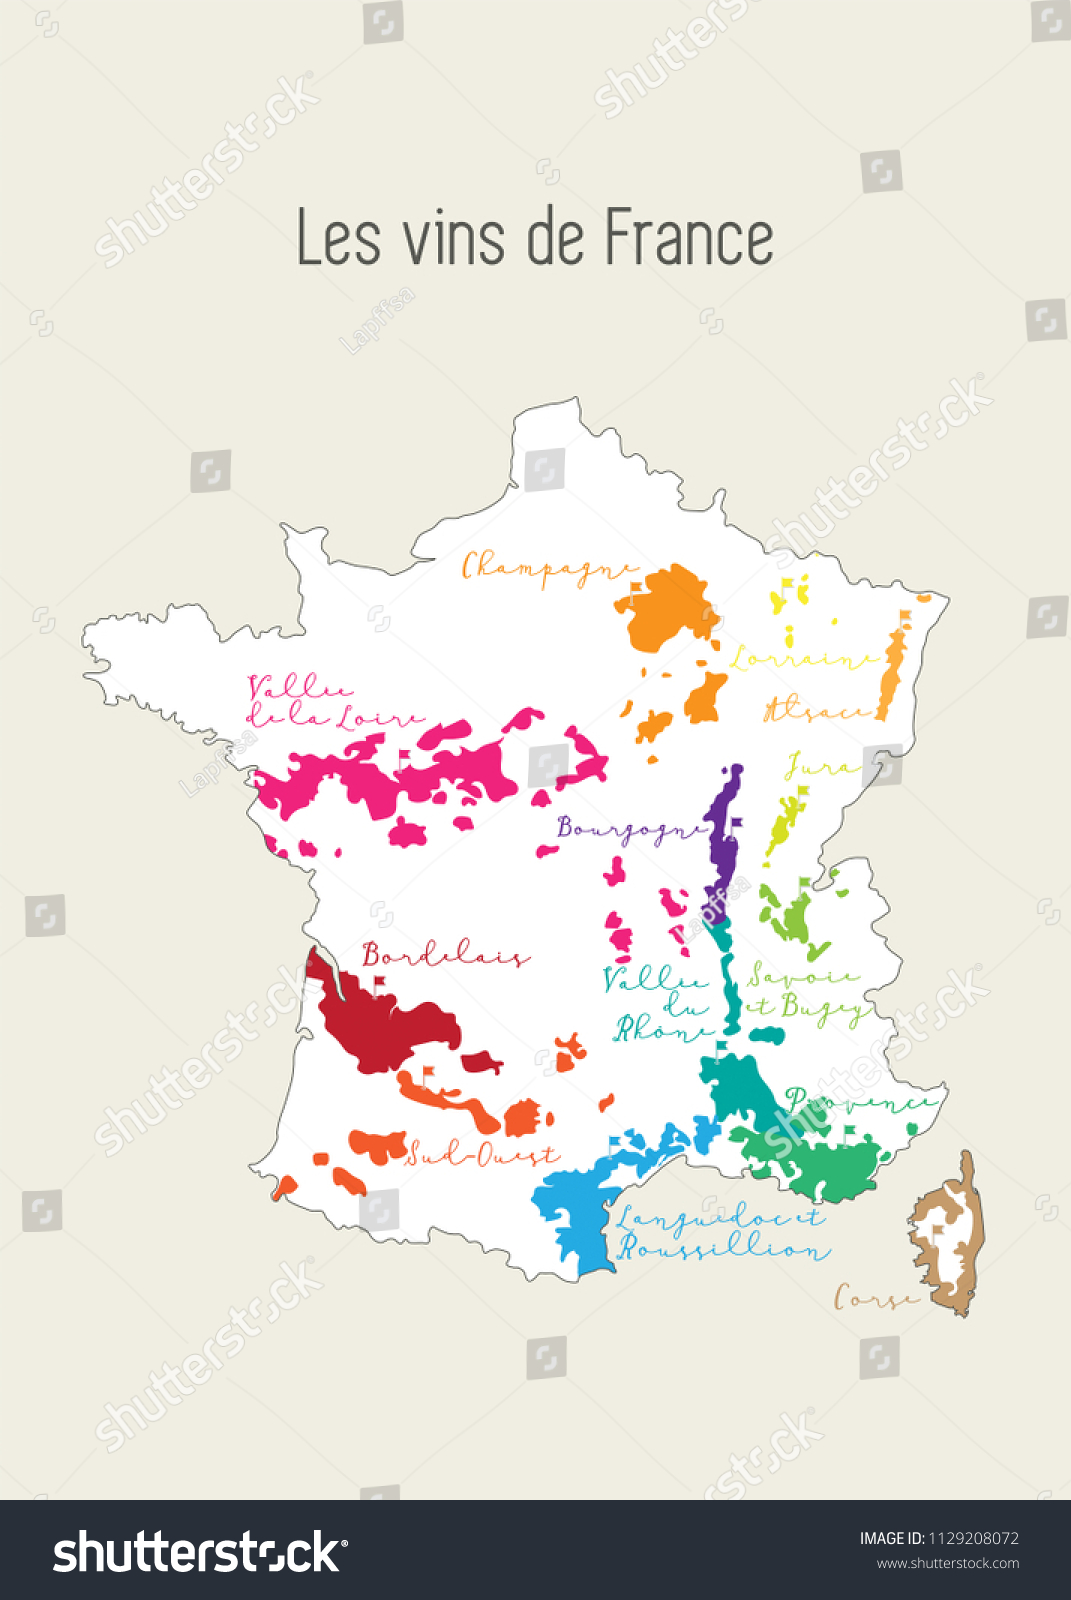 Regions De France Map French Wine Regions French Language Stock Vector Royalty Free